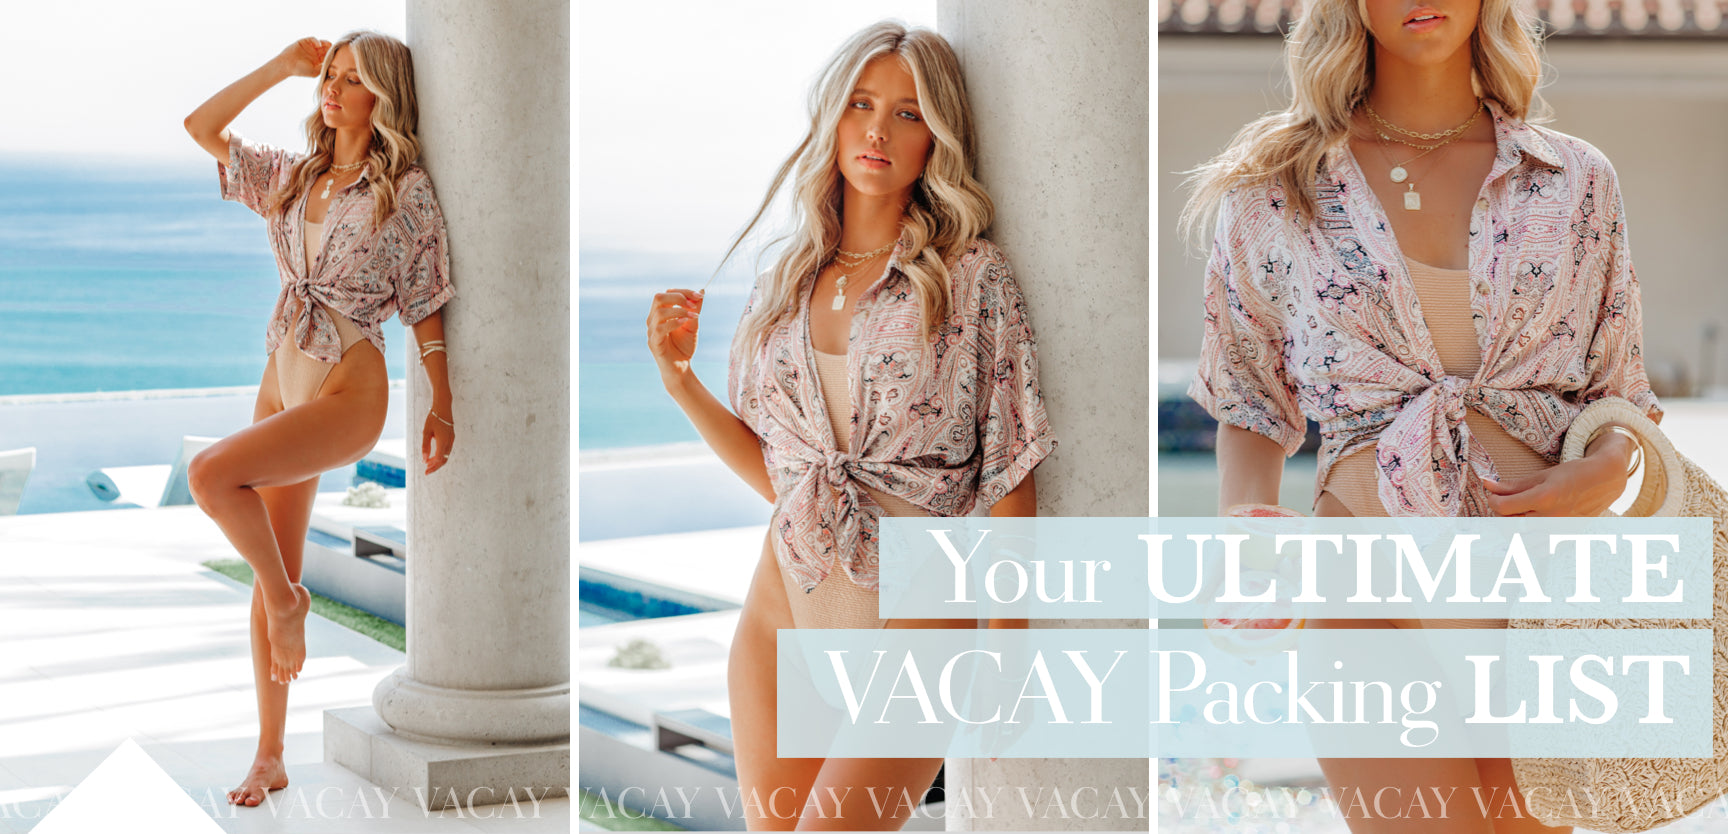 From the deep blue horizons of Naxos to the expansive San Diego beaches, now is the time to declare Out Of Office and jet-set somewhere warmer! Deciding which items make the cut for your inevitably overcrowded carry-on can be tricky. Don't fret, VICI is here to judge which items are absolutely essential to achieve that beach to bar look!